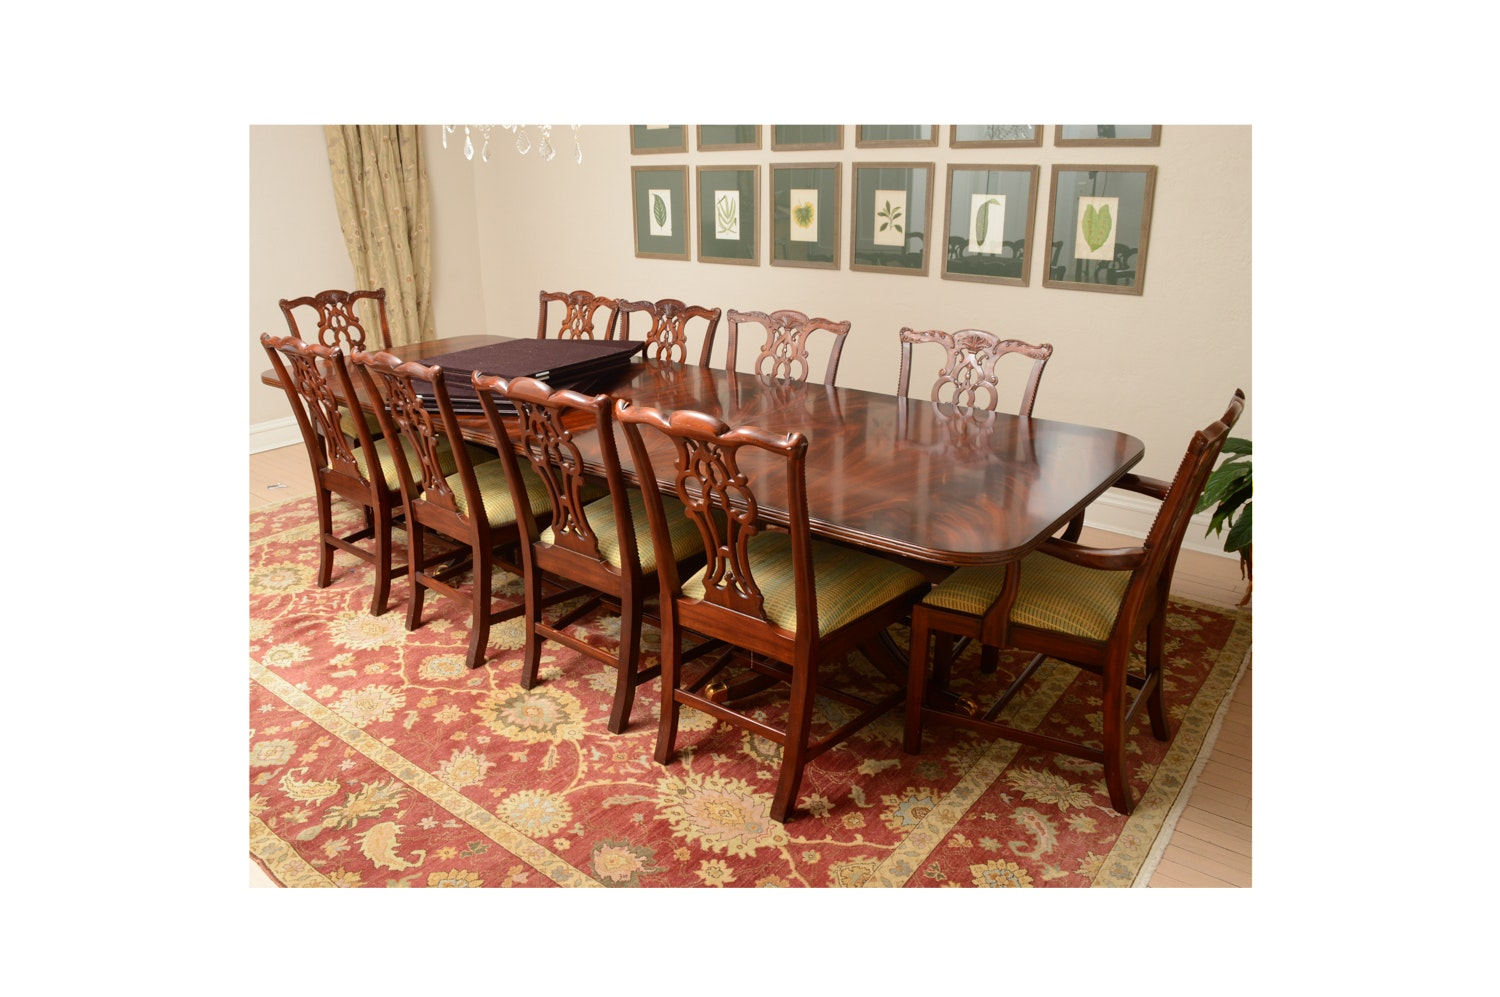 Vintage Chippendale Style Mahogany Dining Table with Chairs by Maitland-Smith